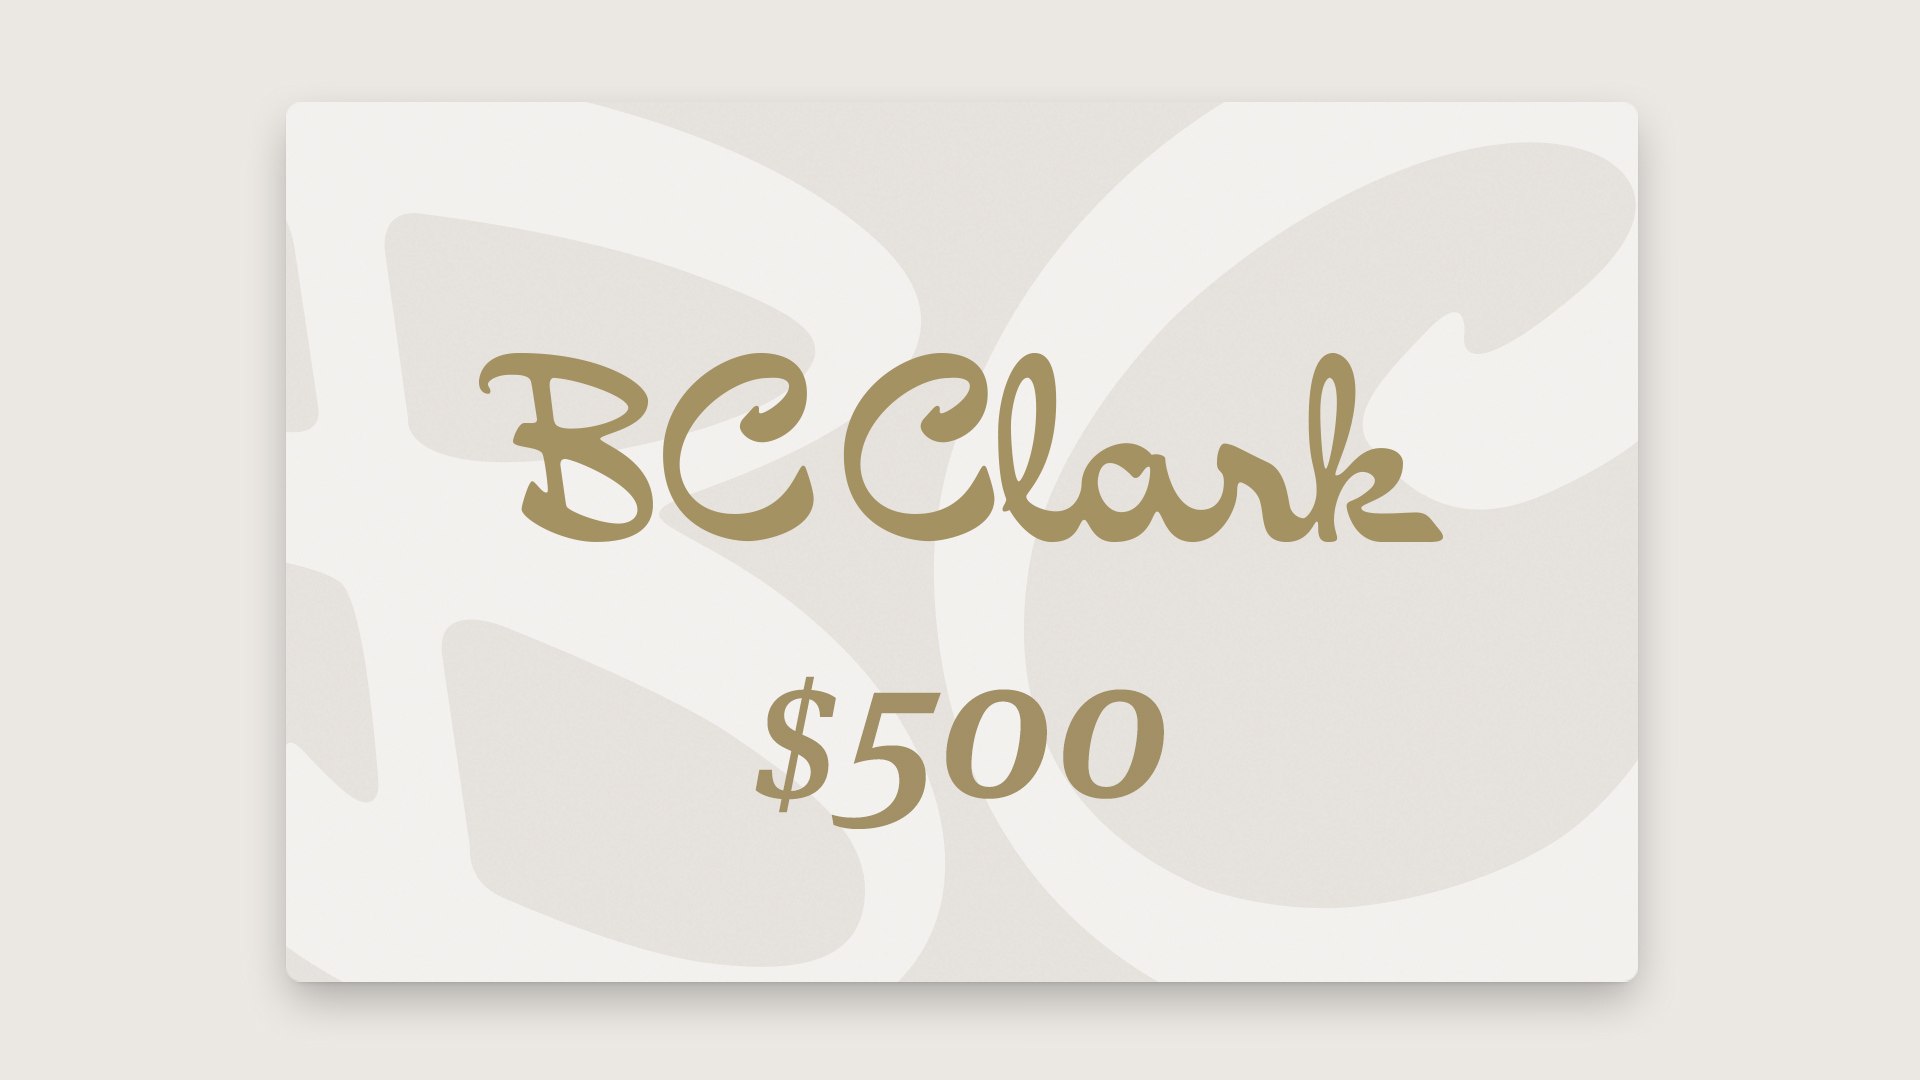 $500 BC Clark Gift Card Giveaway Giveaway Image